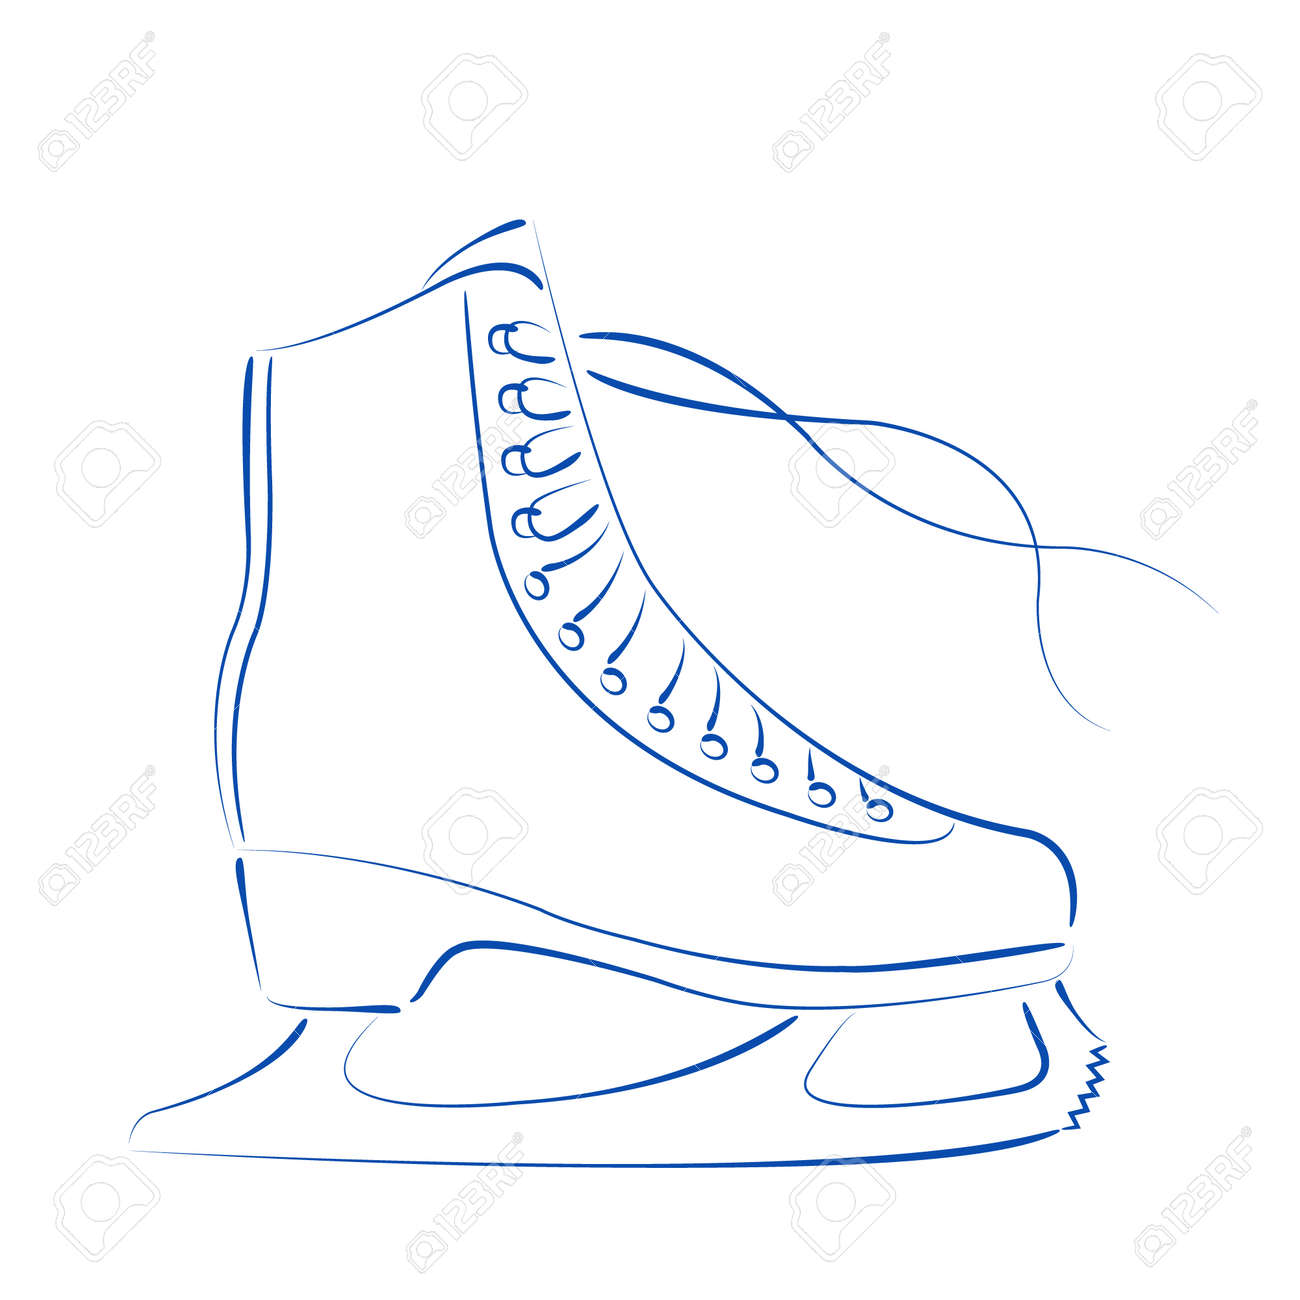 elegant sketched ice skates isolated on white background design